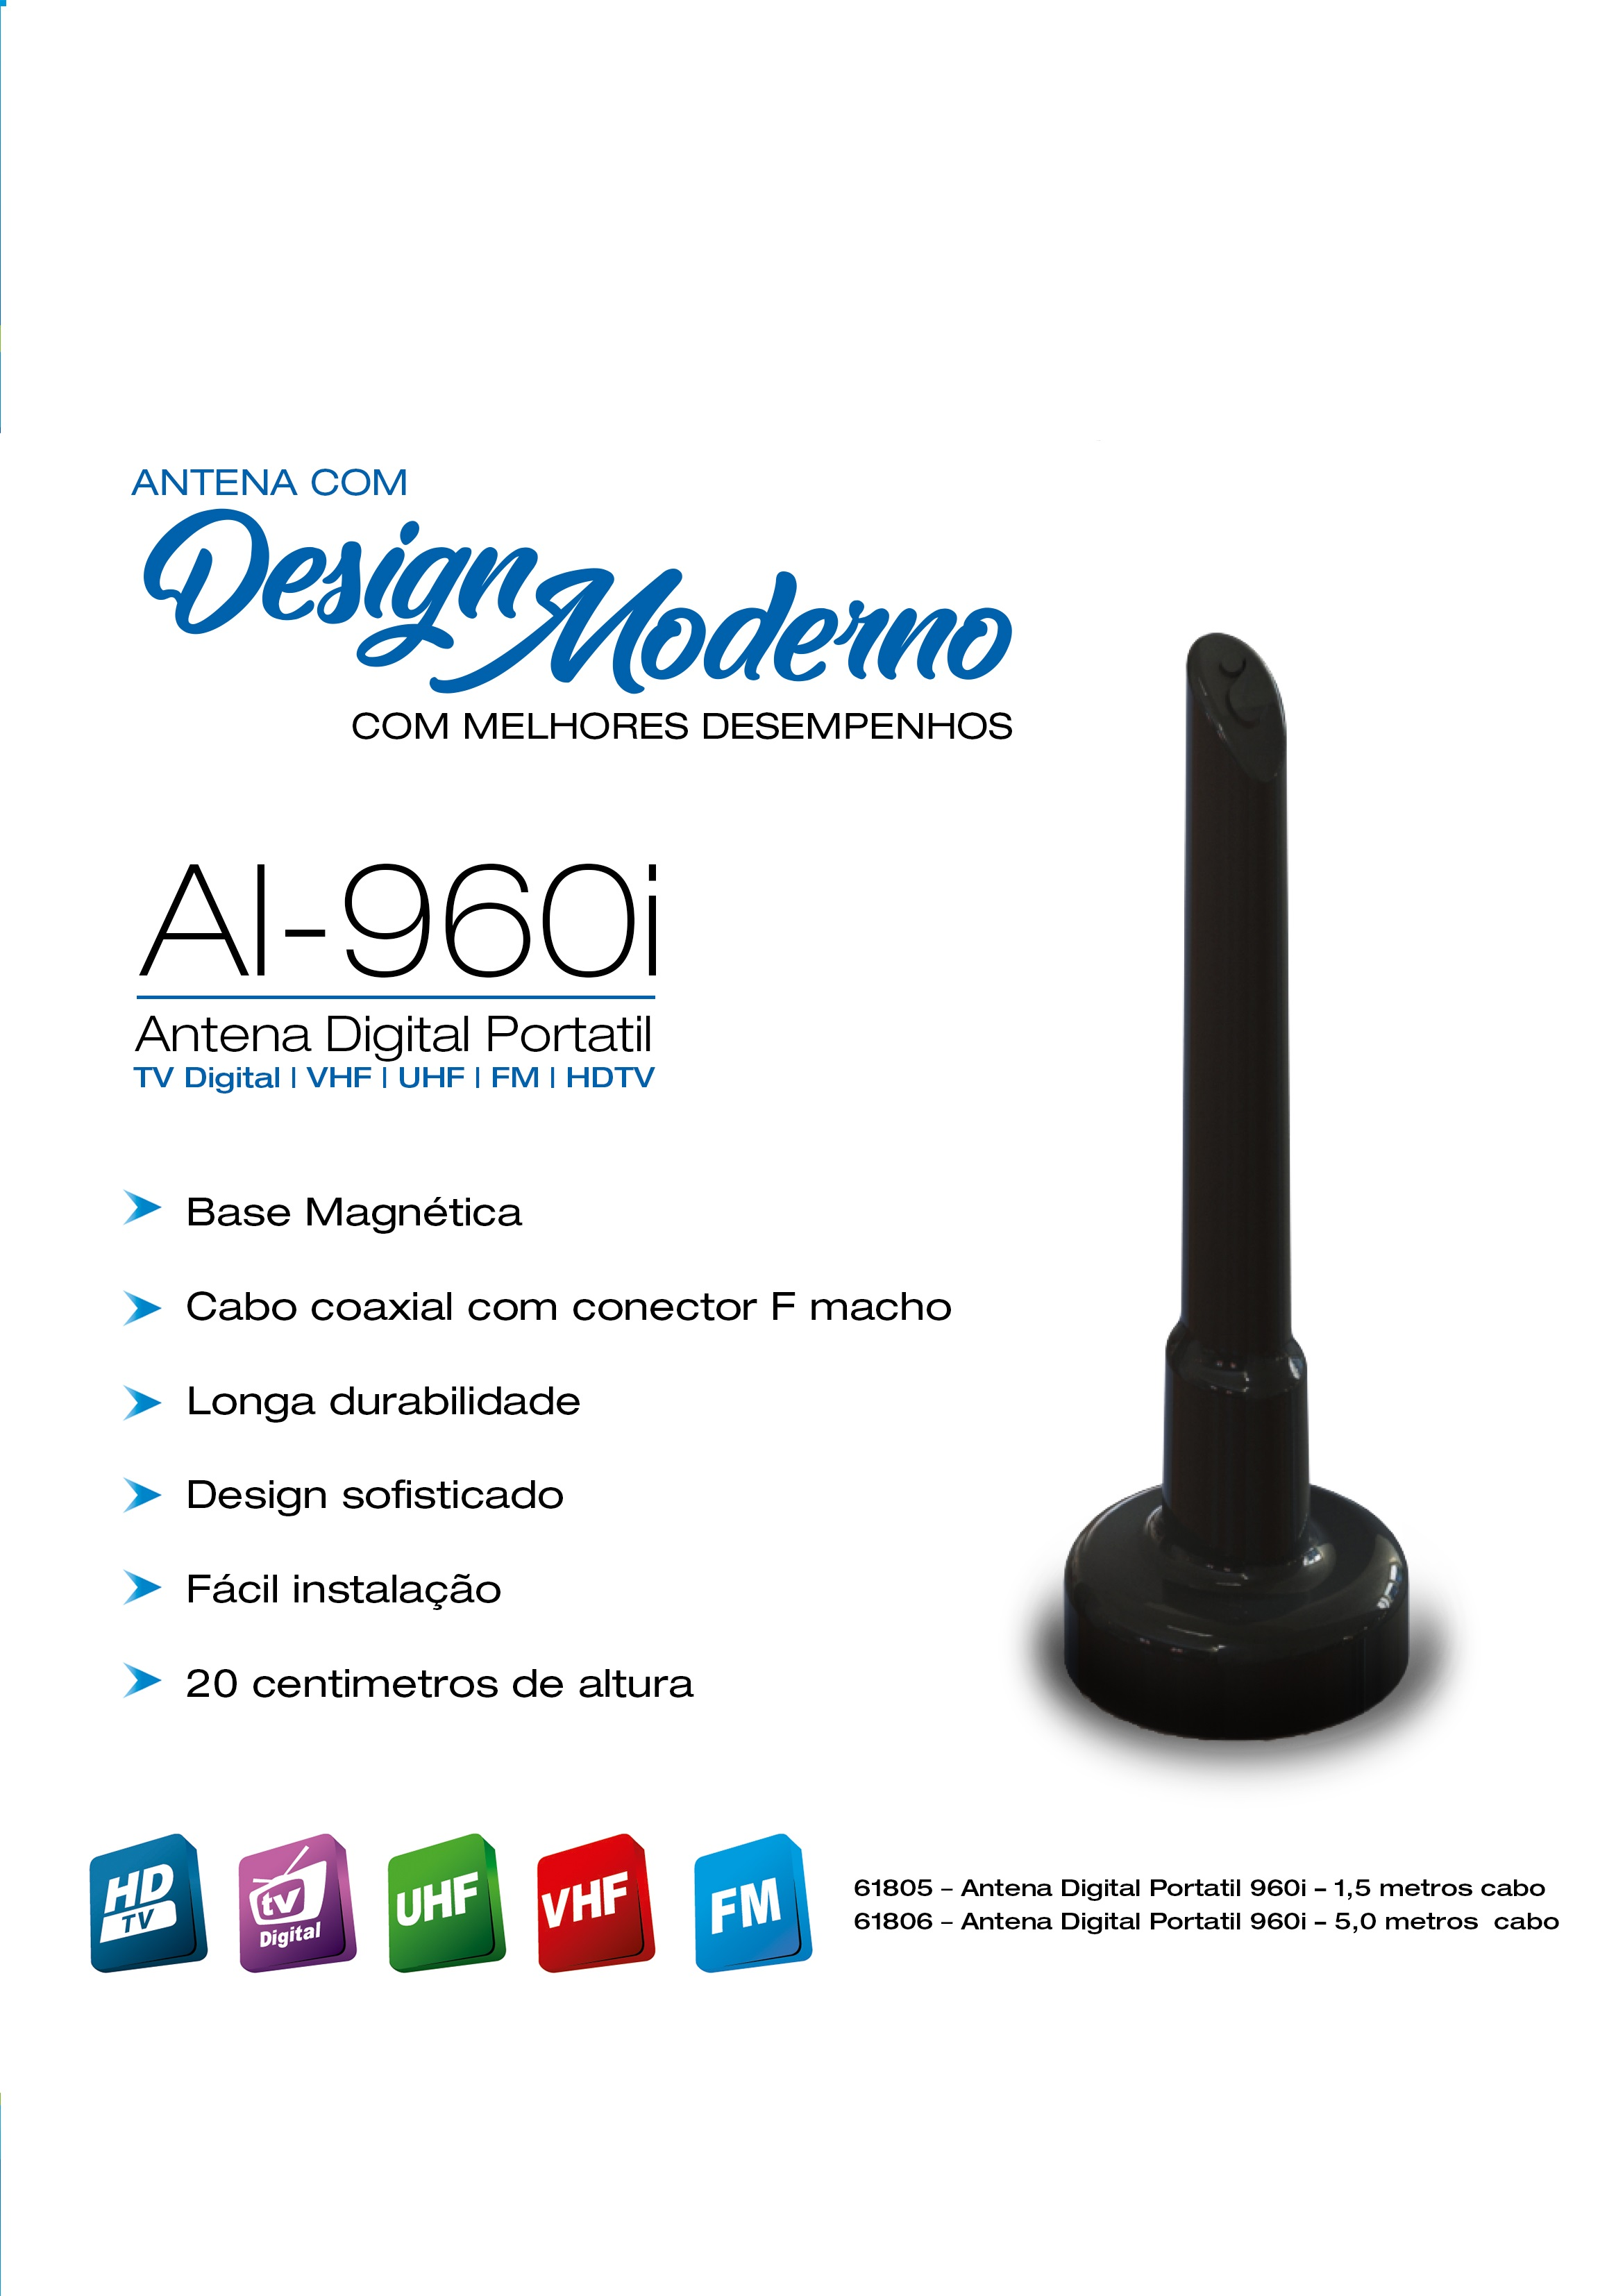 ANTENA TV INTERNA DIGITAL AI960I 1,5MT INDUSAT